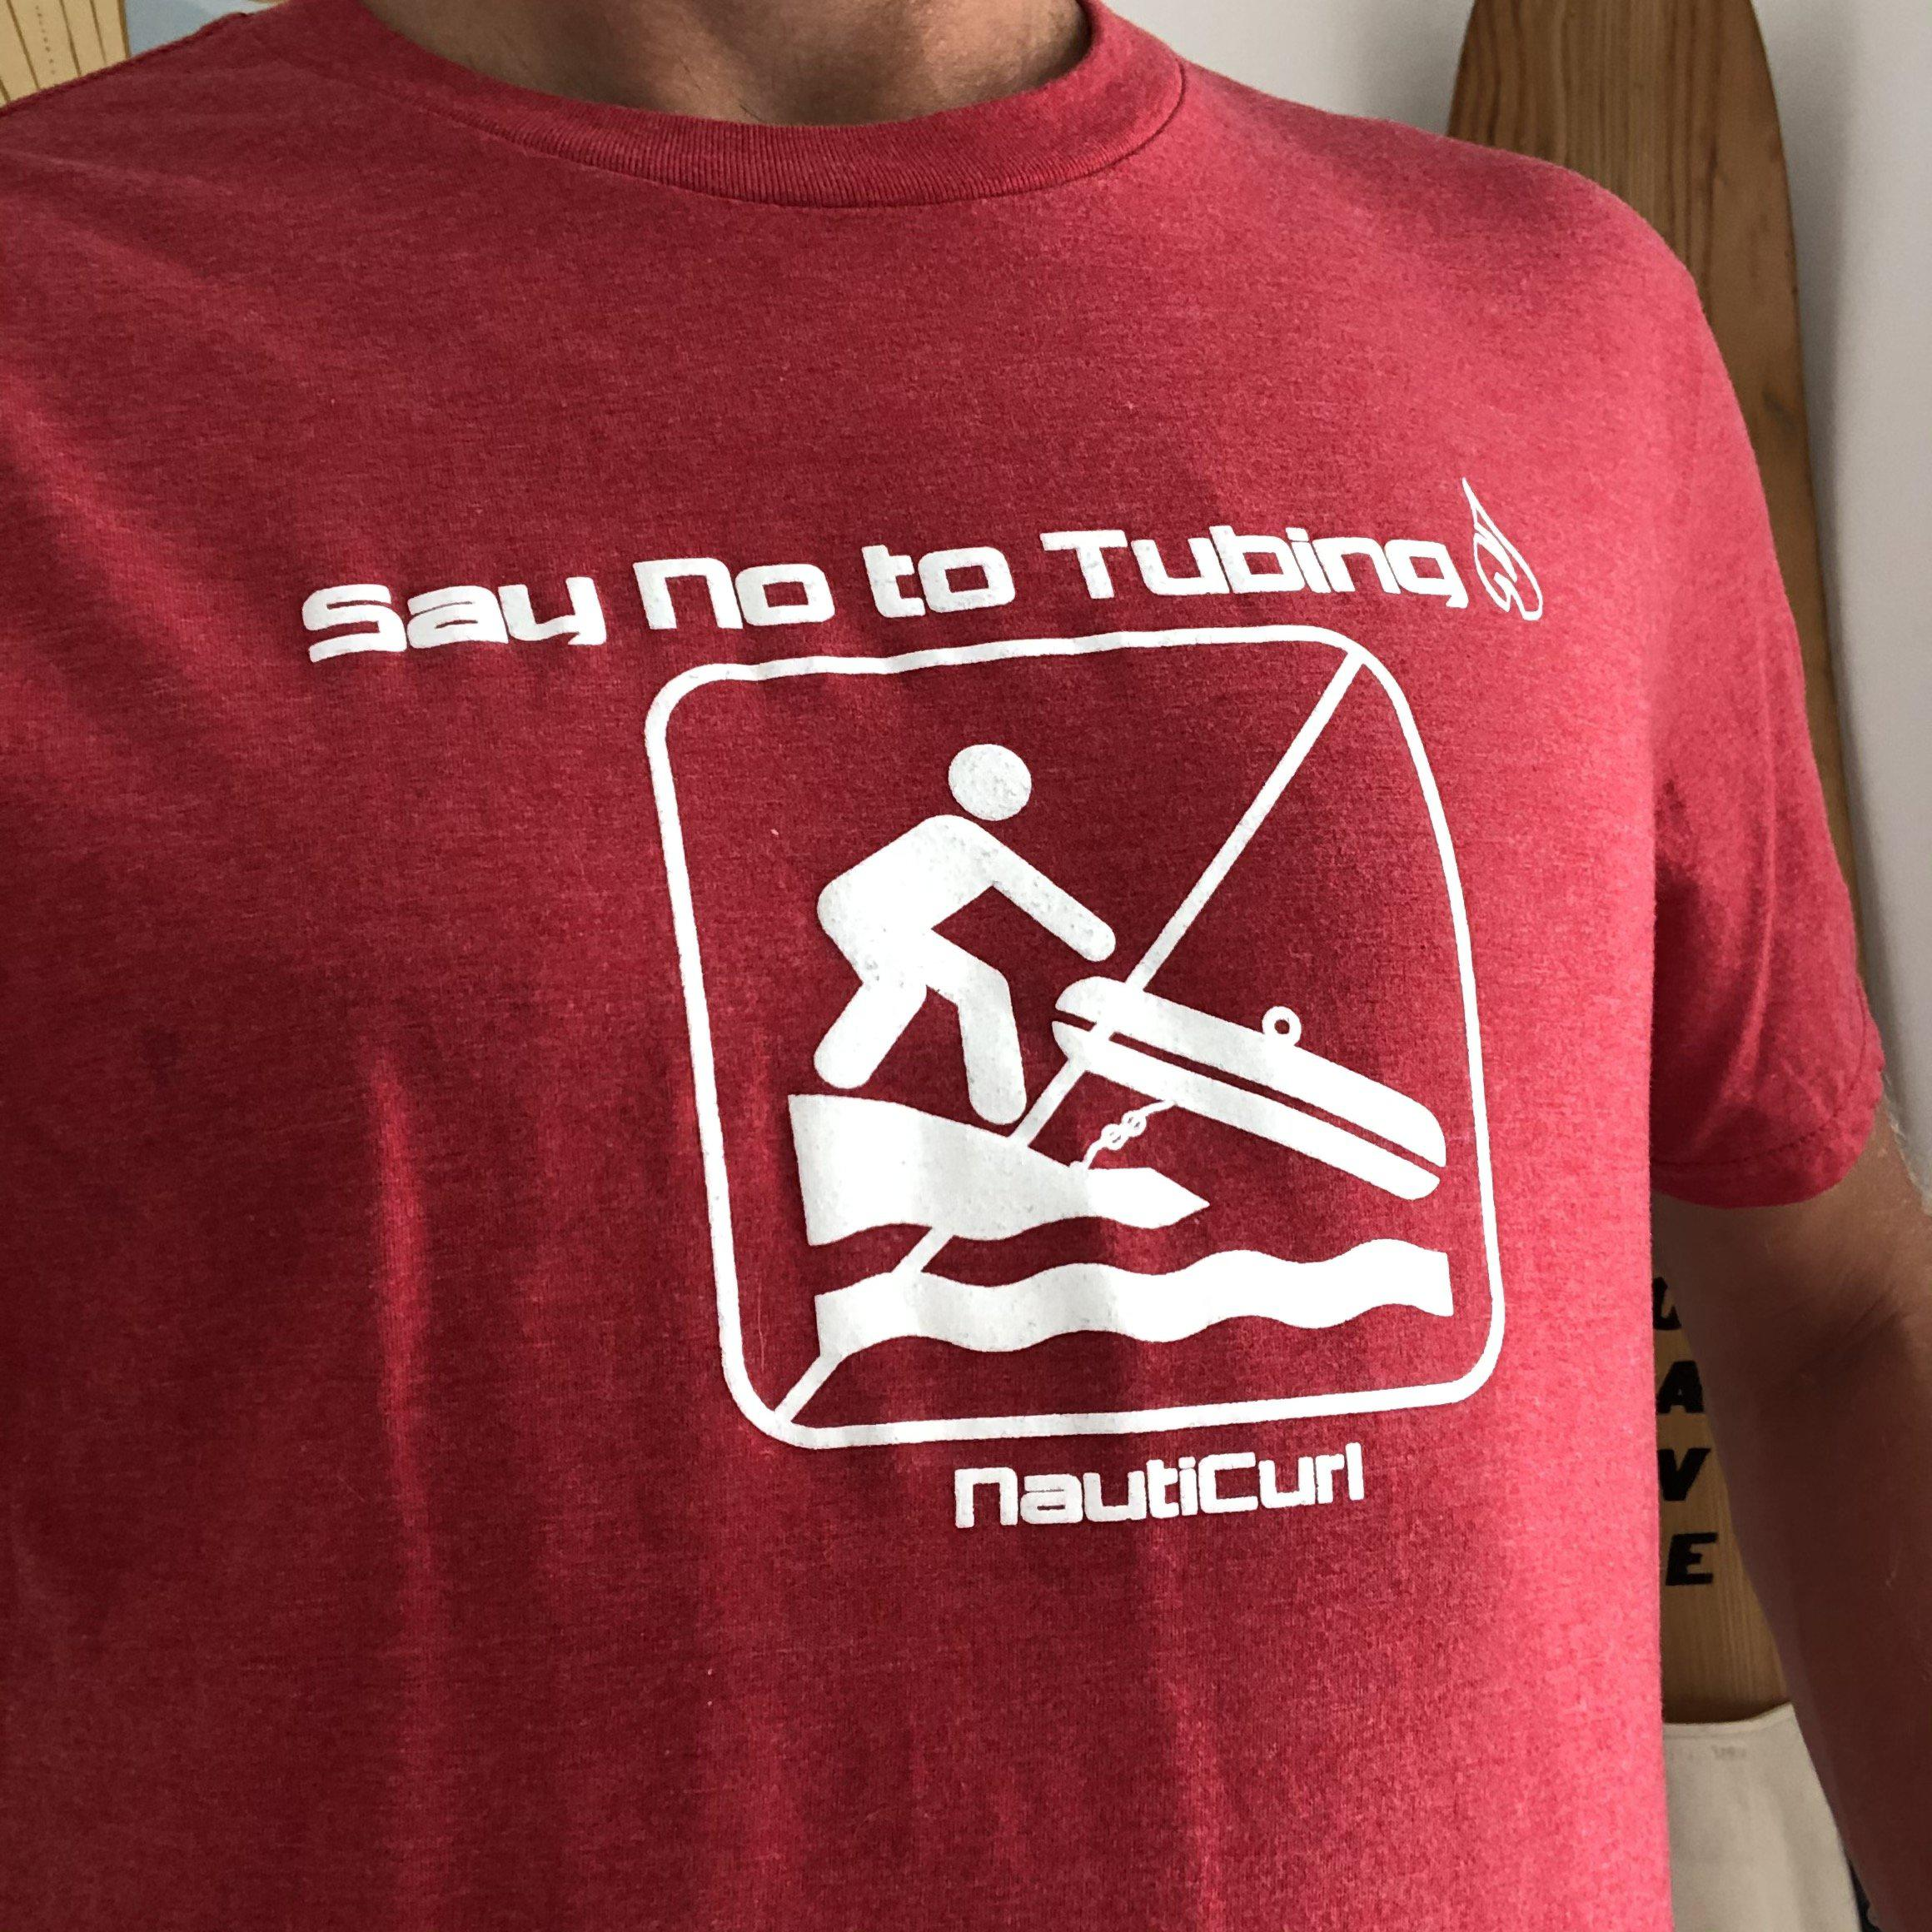 Say No to Tubing - NautiCurl funny boating shirt - Wakesurfing wakeboarding